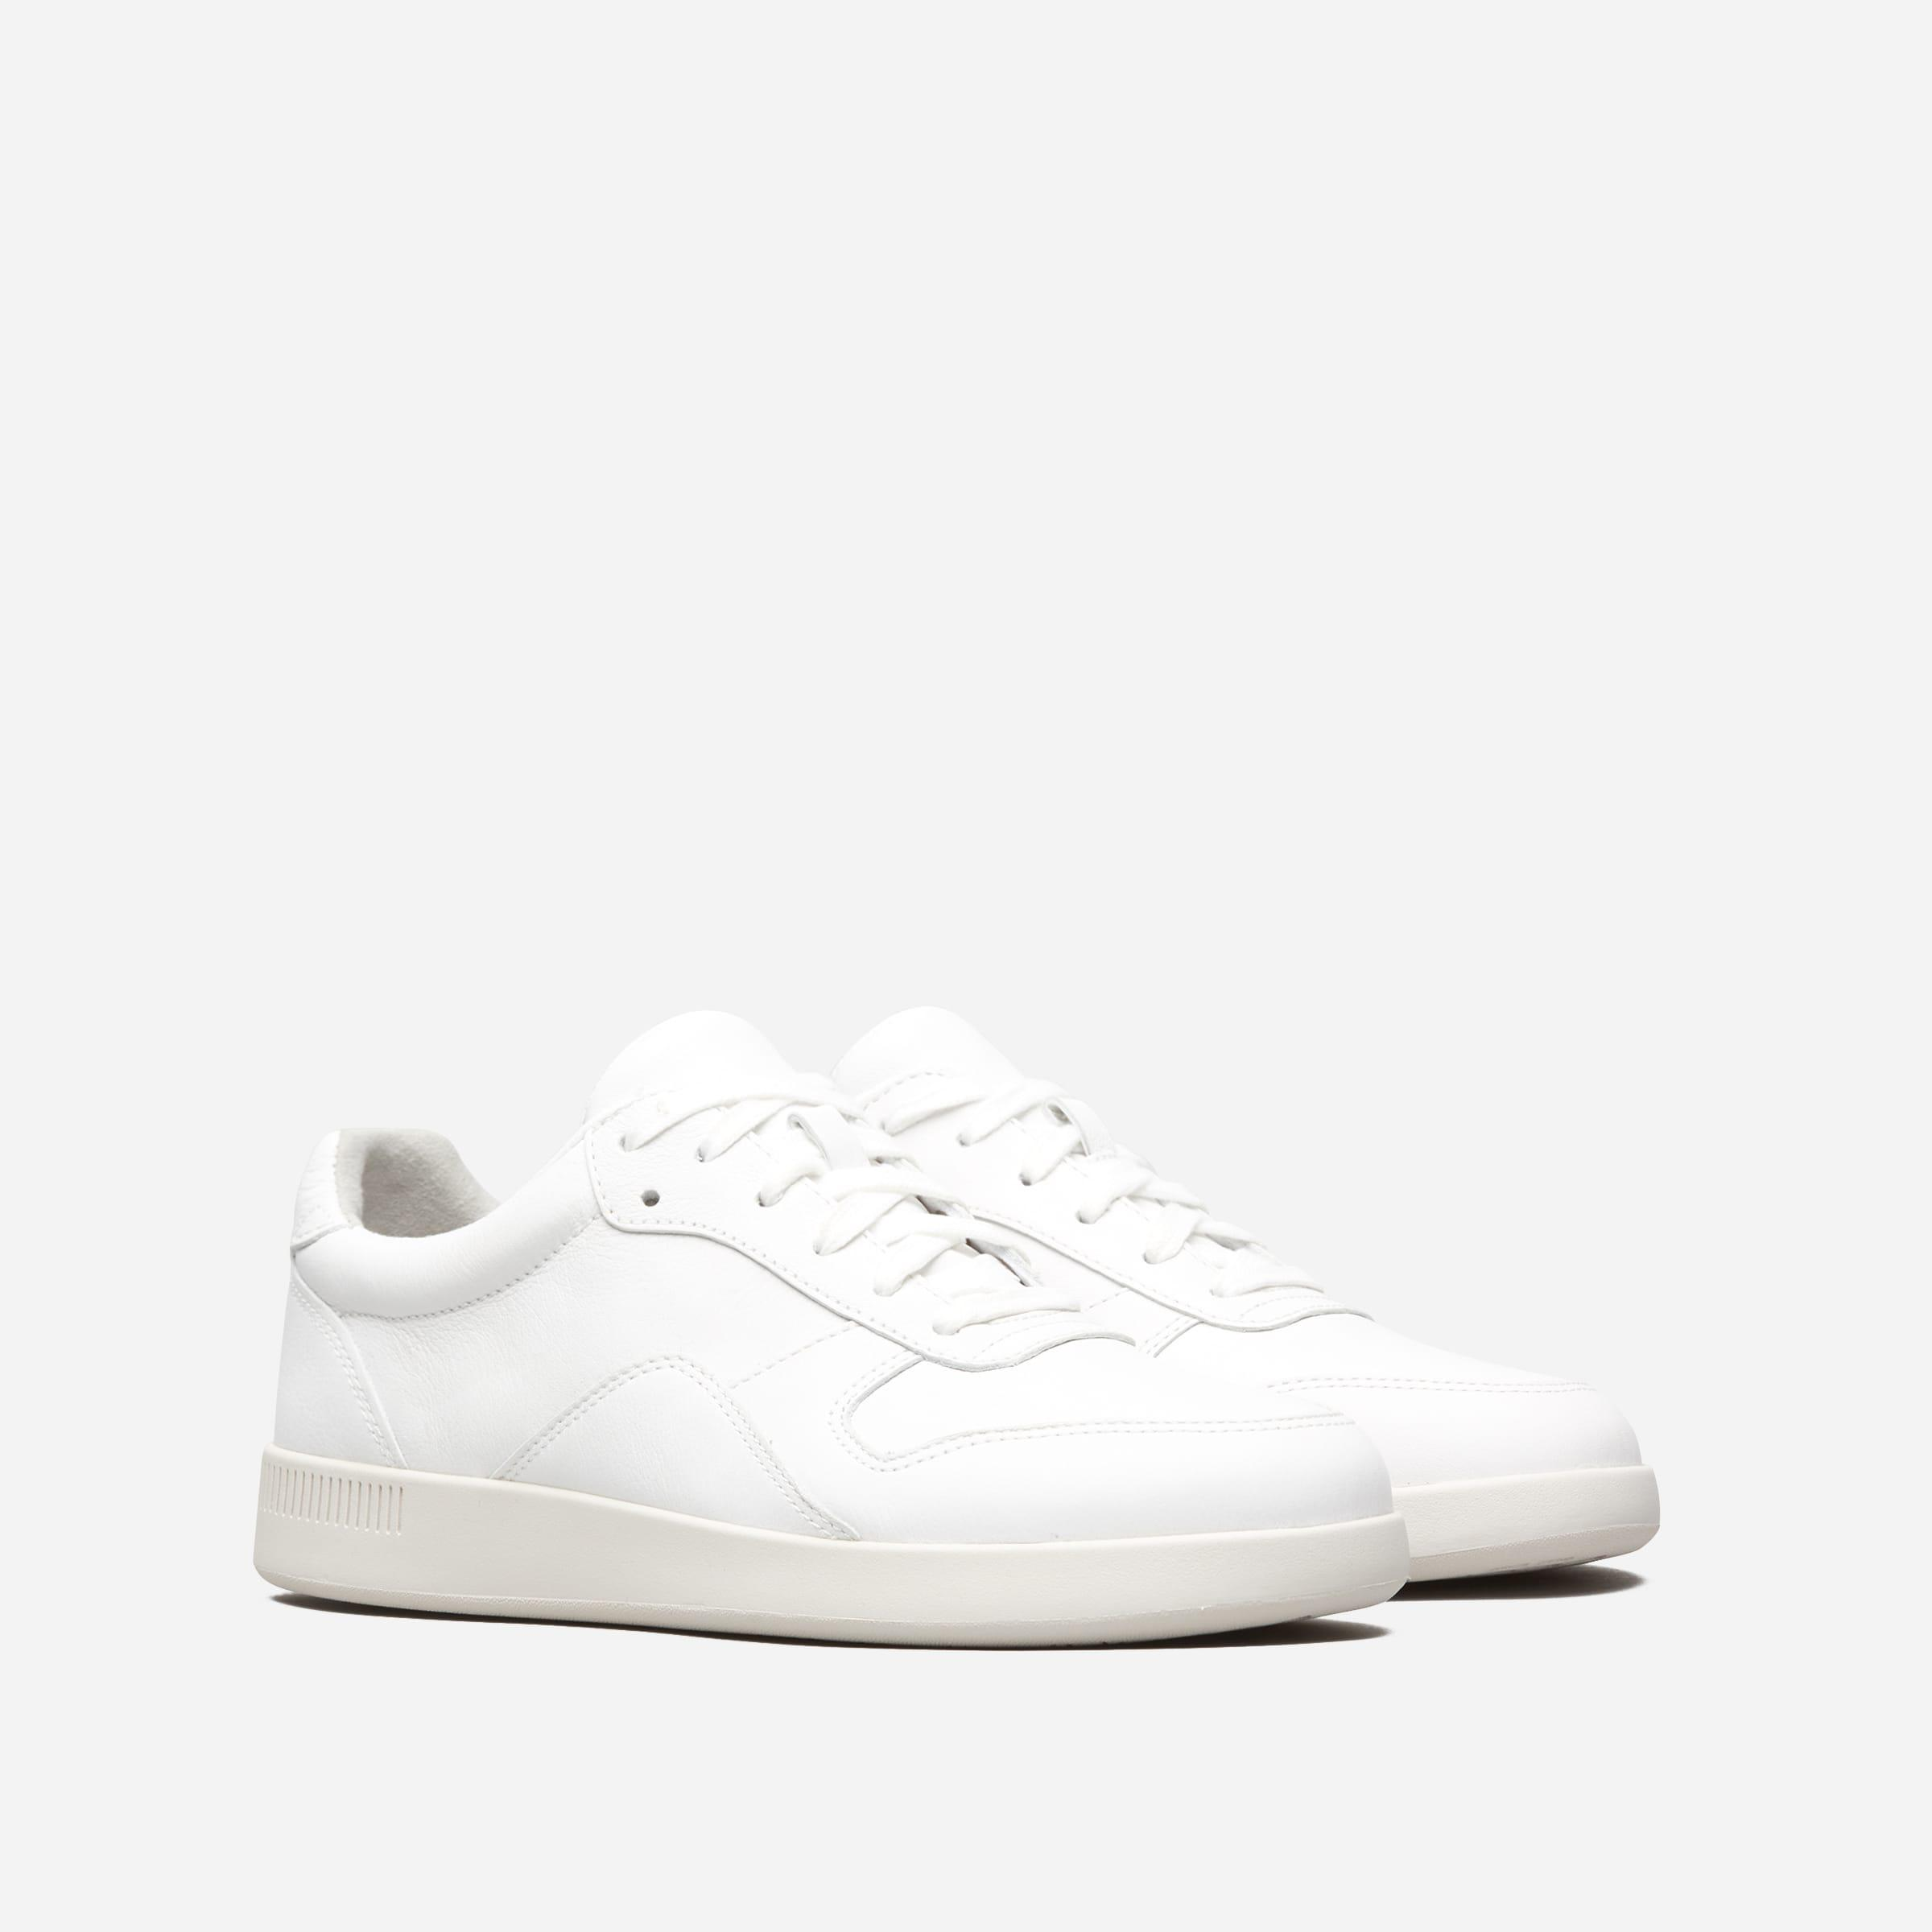 The Court Sneaker 1